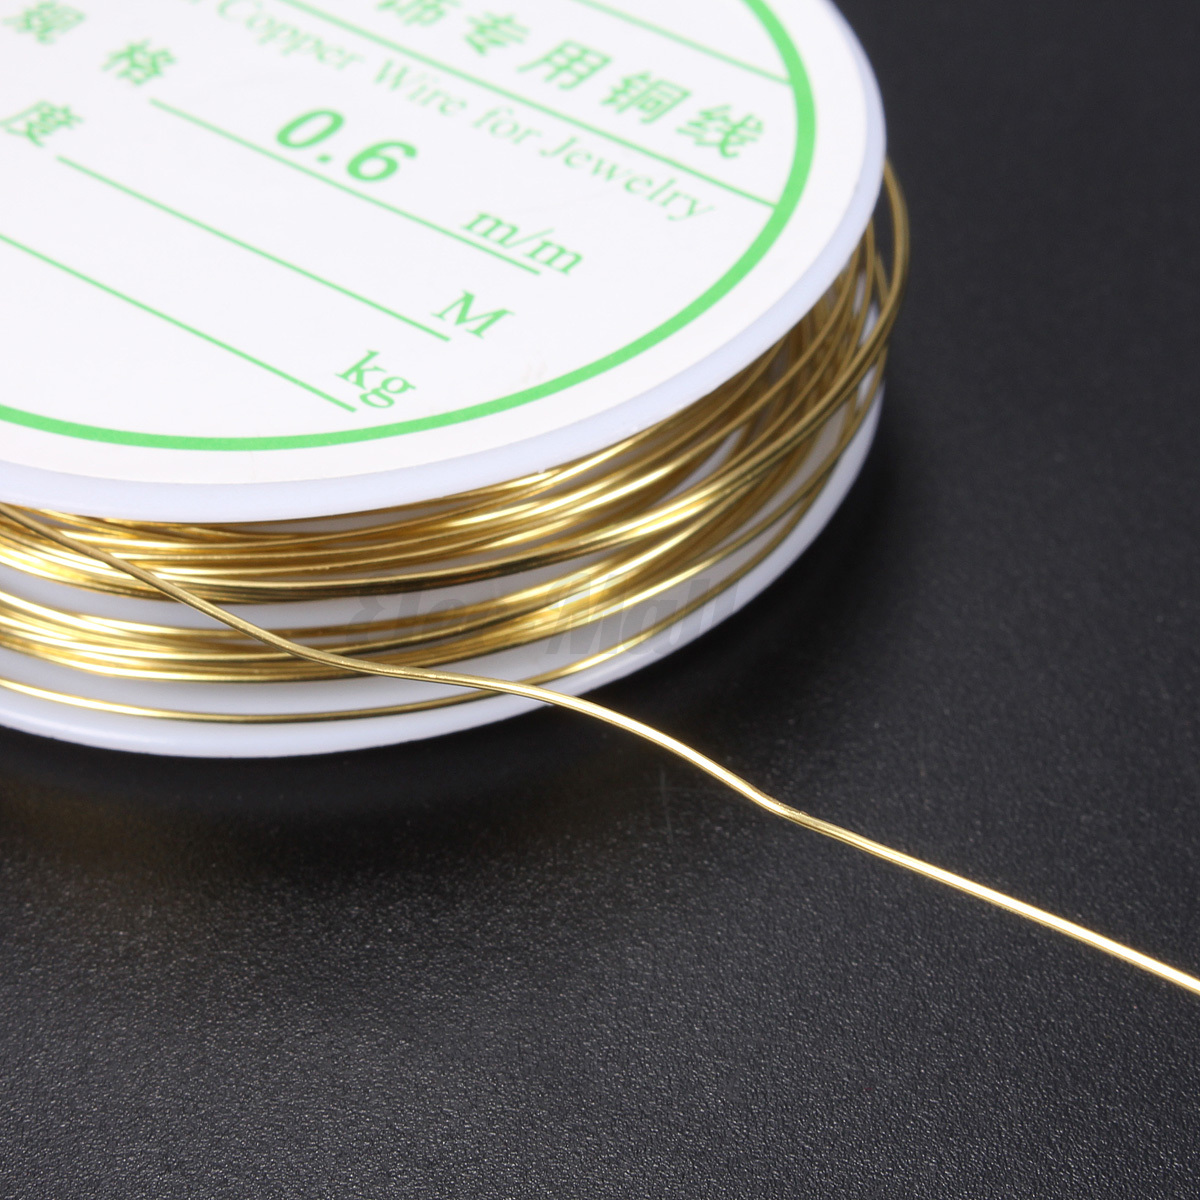 Copper Conductor Ampacity : Copper wire ampacity pictures to pin on pinterest